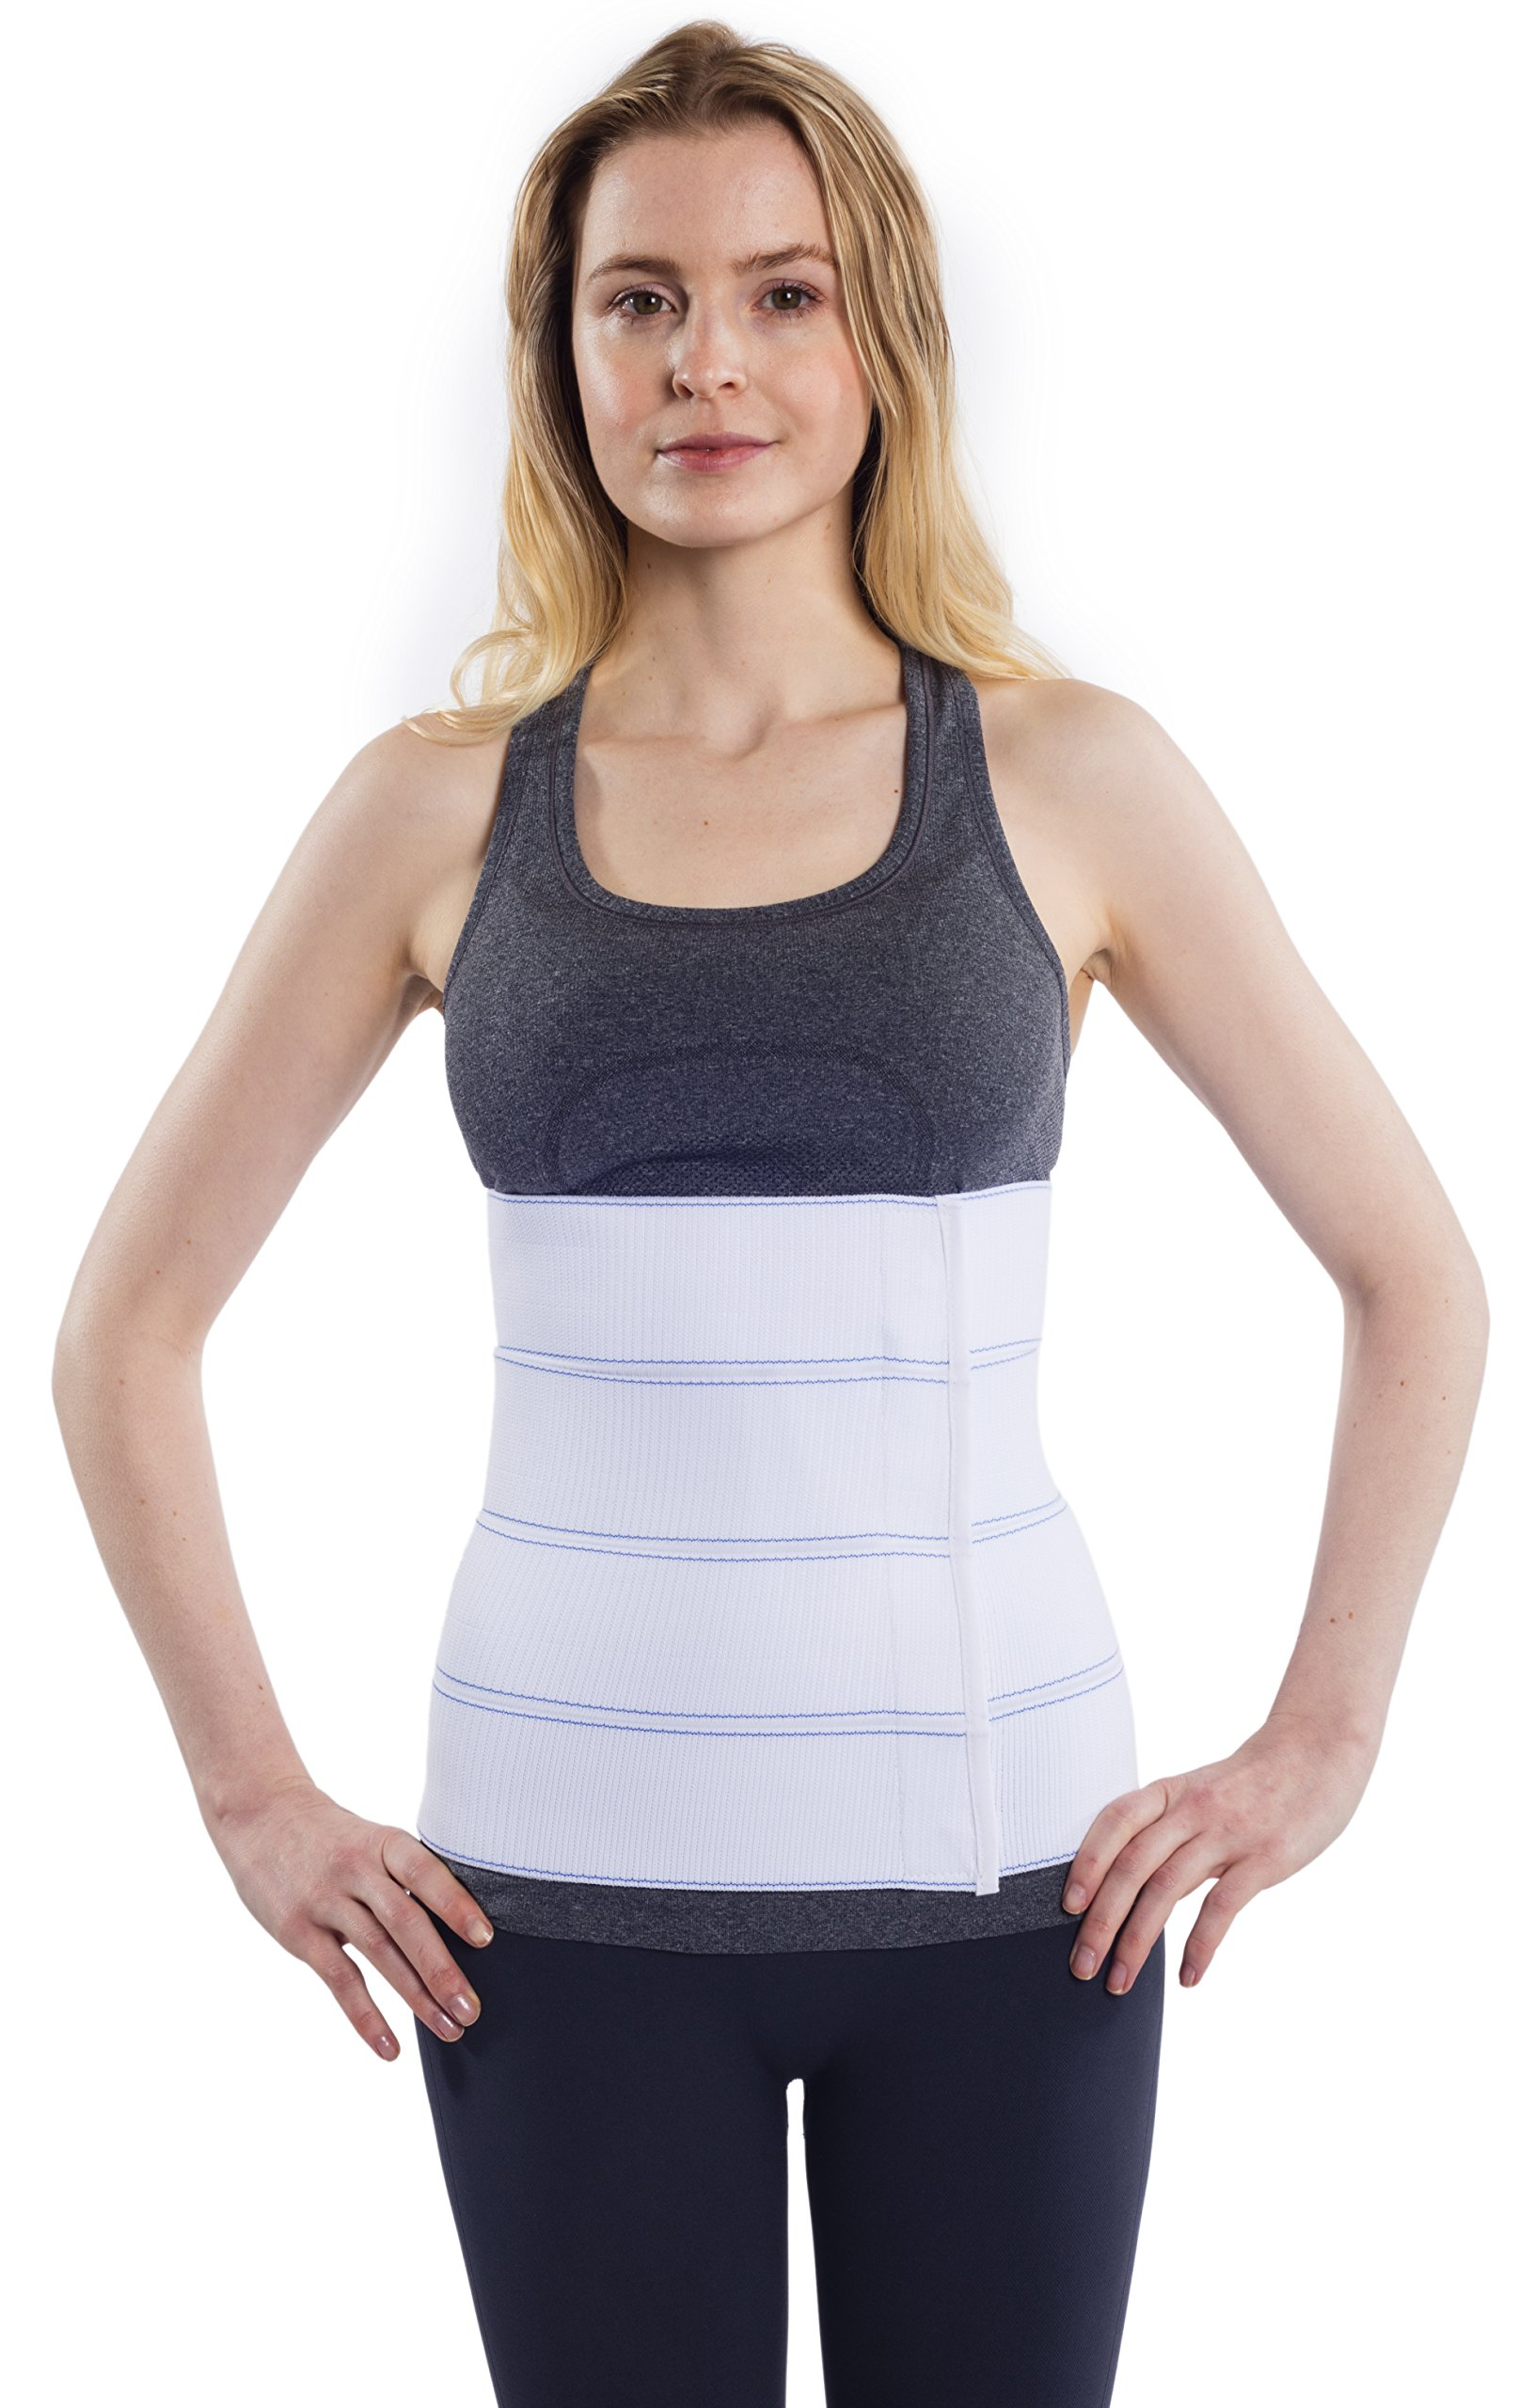 NYOrtho Abdominal Binder Lower Waist Support Belt - Compression Wrap for Men and Women (90'' - 105'') 4 Panel - 12'' by NYORTHO